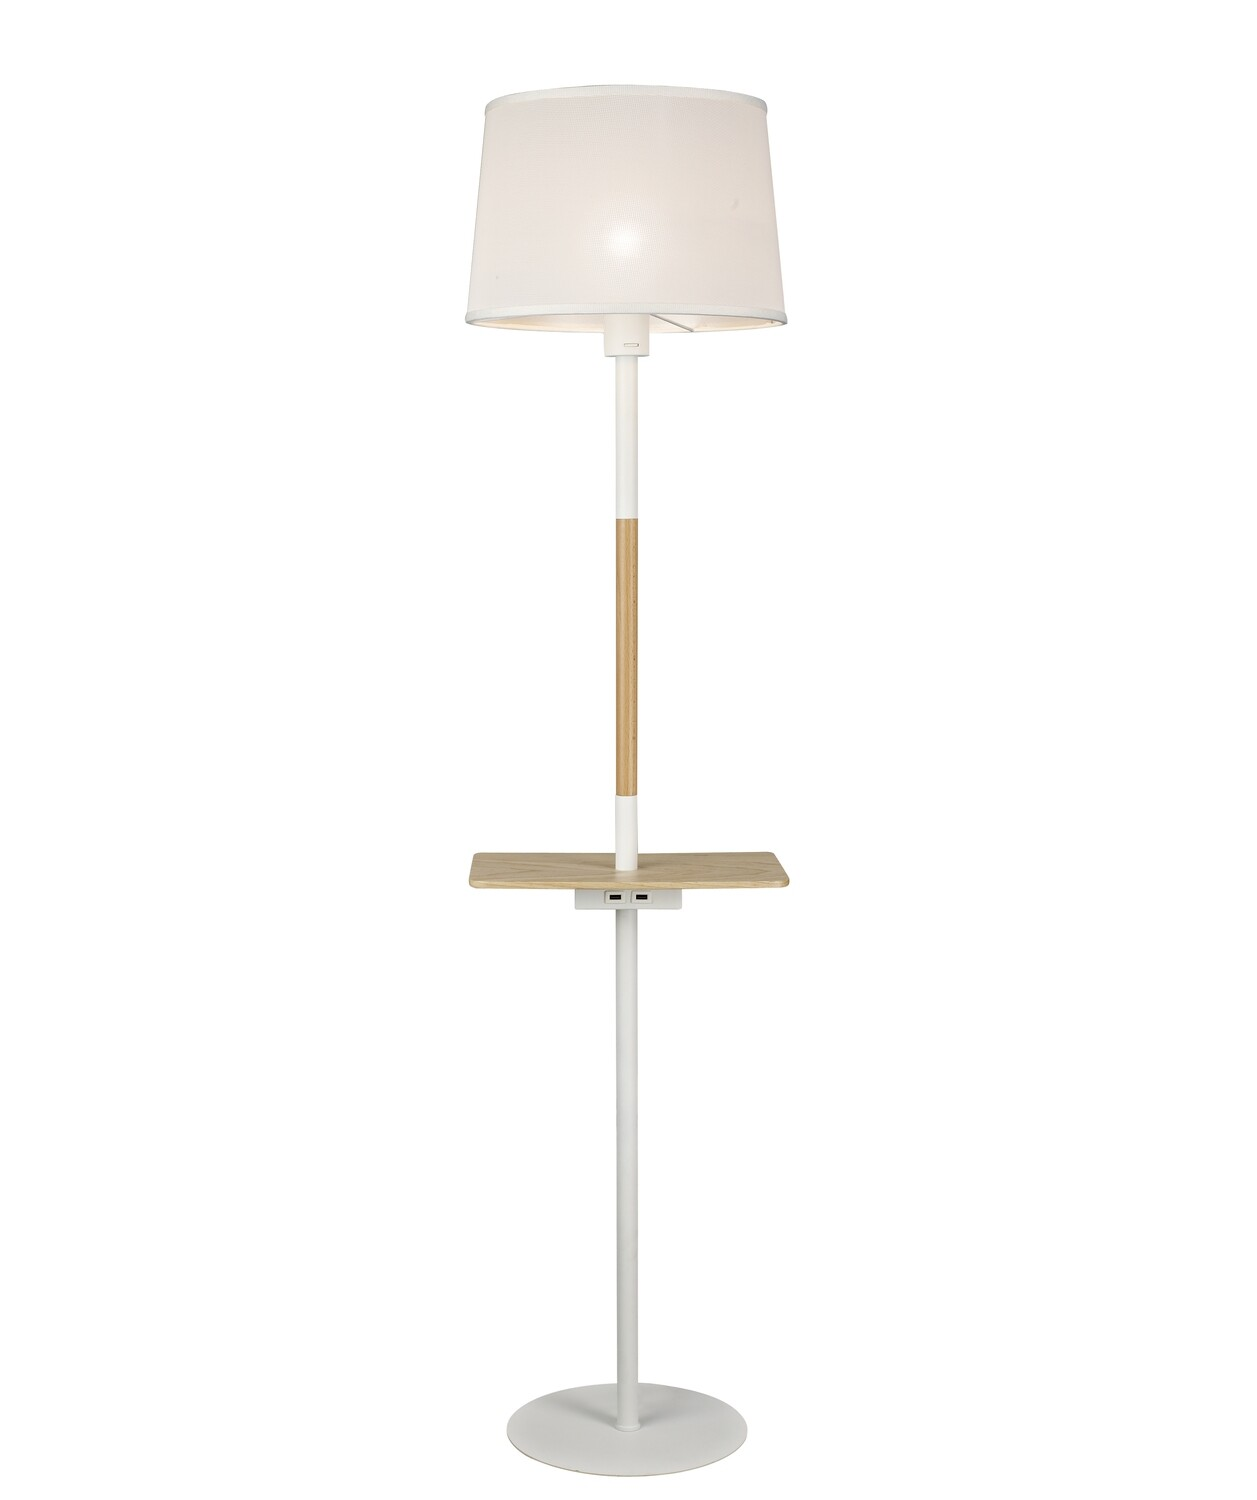 Nordica II Floor Lamp With USB Socket, 1xE27, White/Beech With White Shade